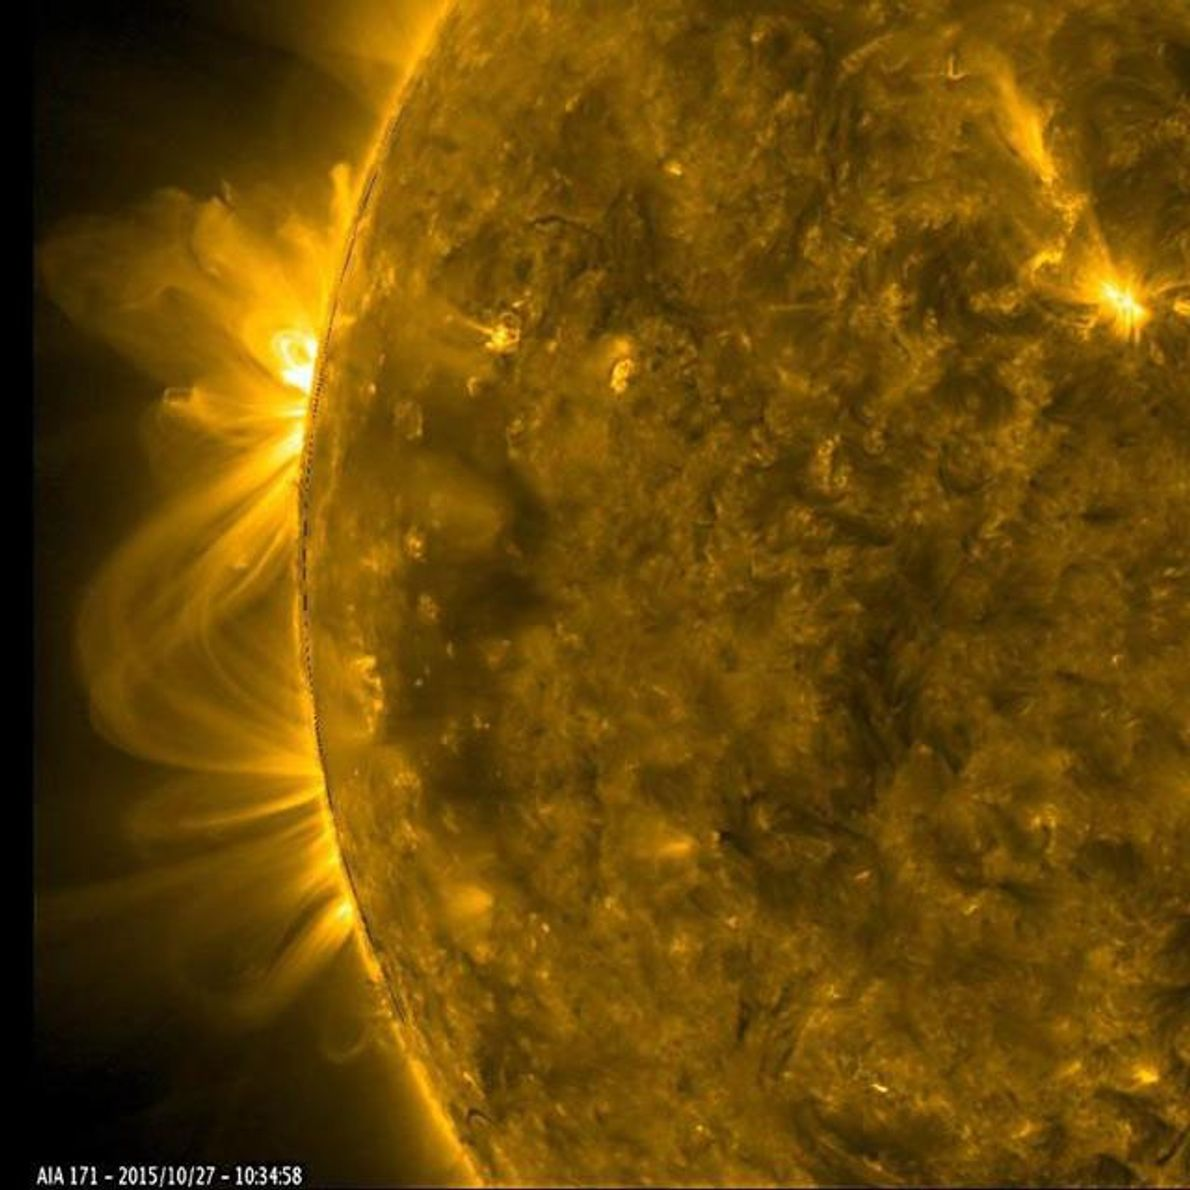 Planets aren't the only celestial bodies that can kick up a tempest. On the sun, regions ...